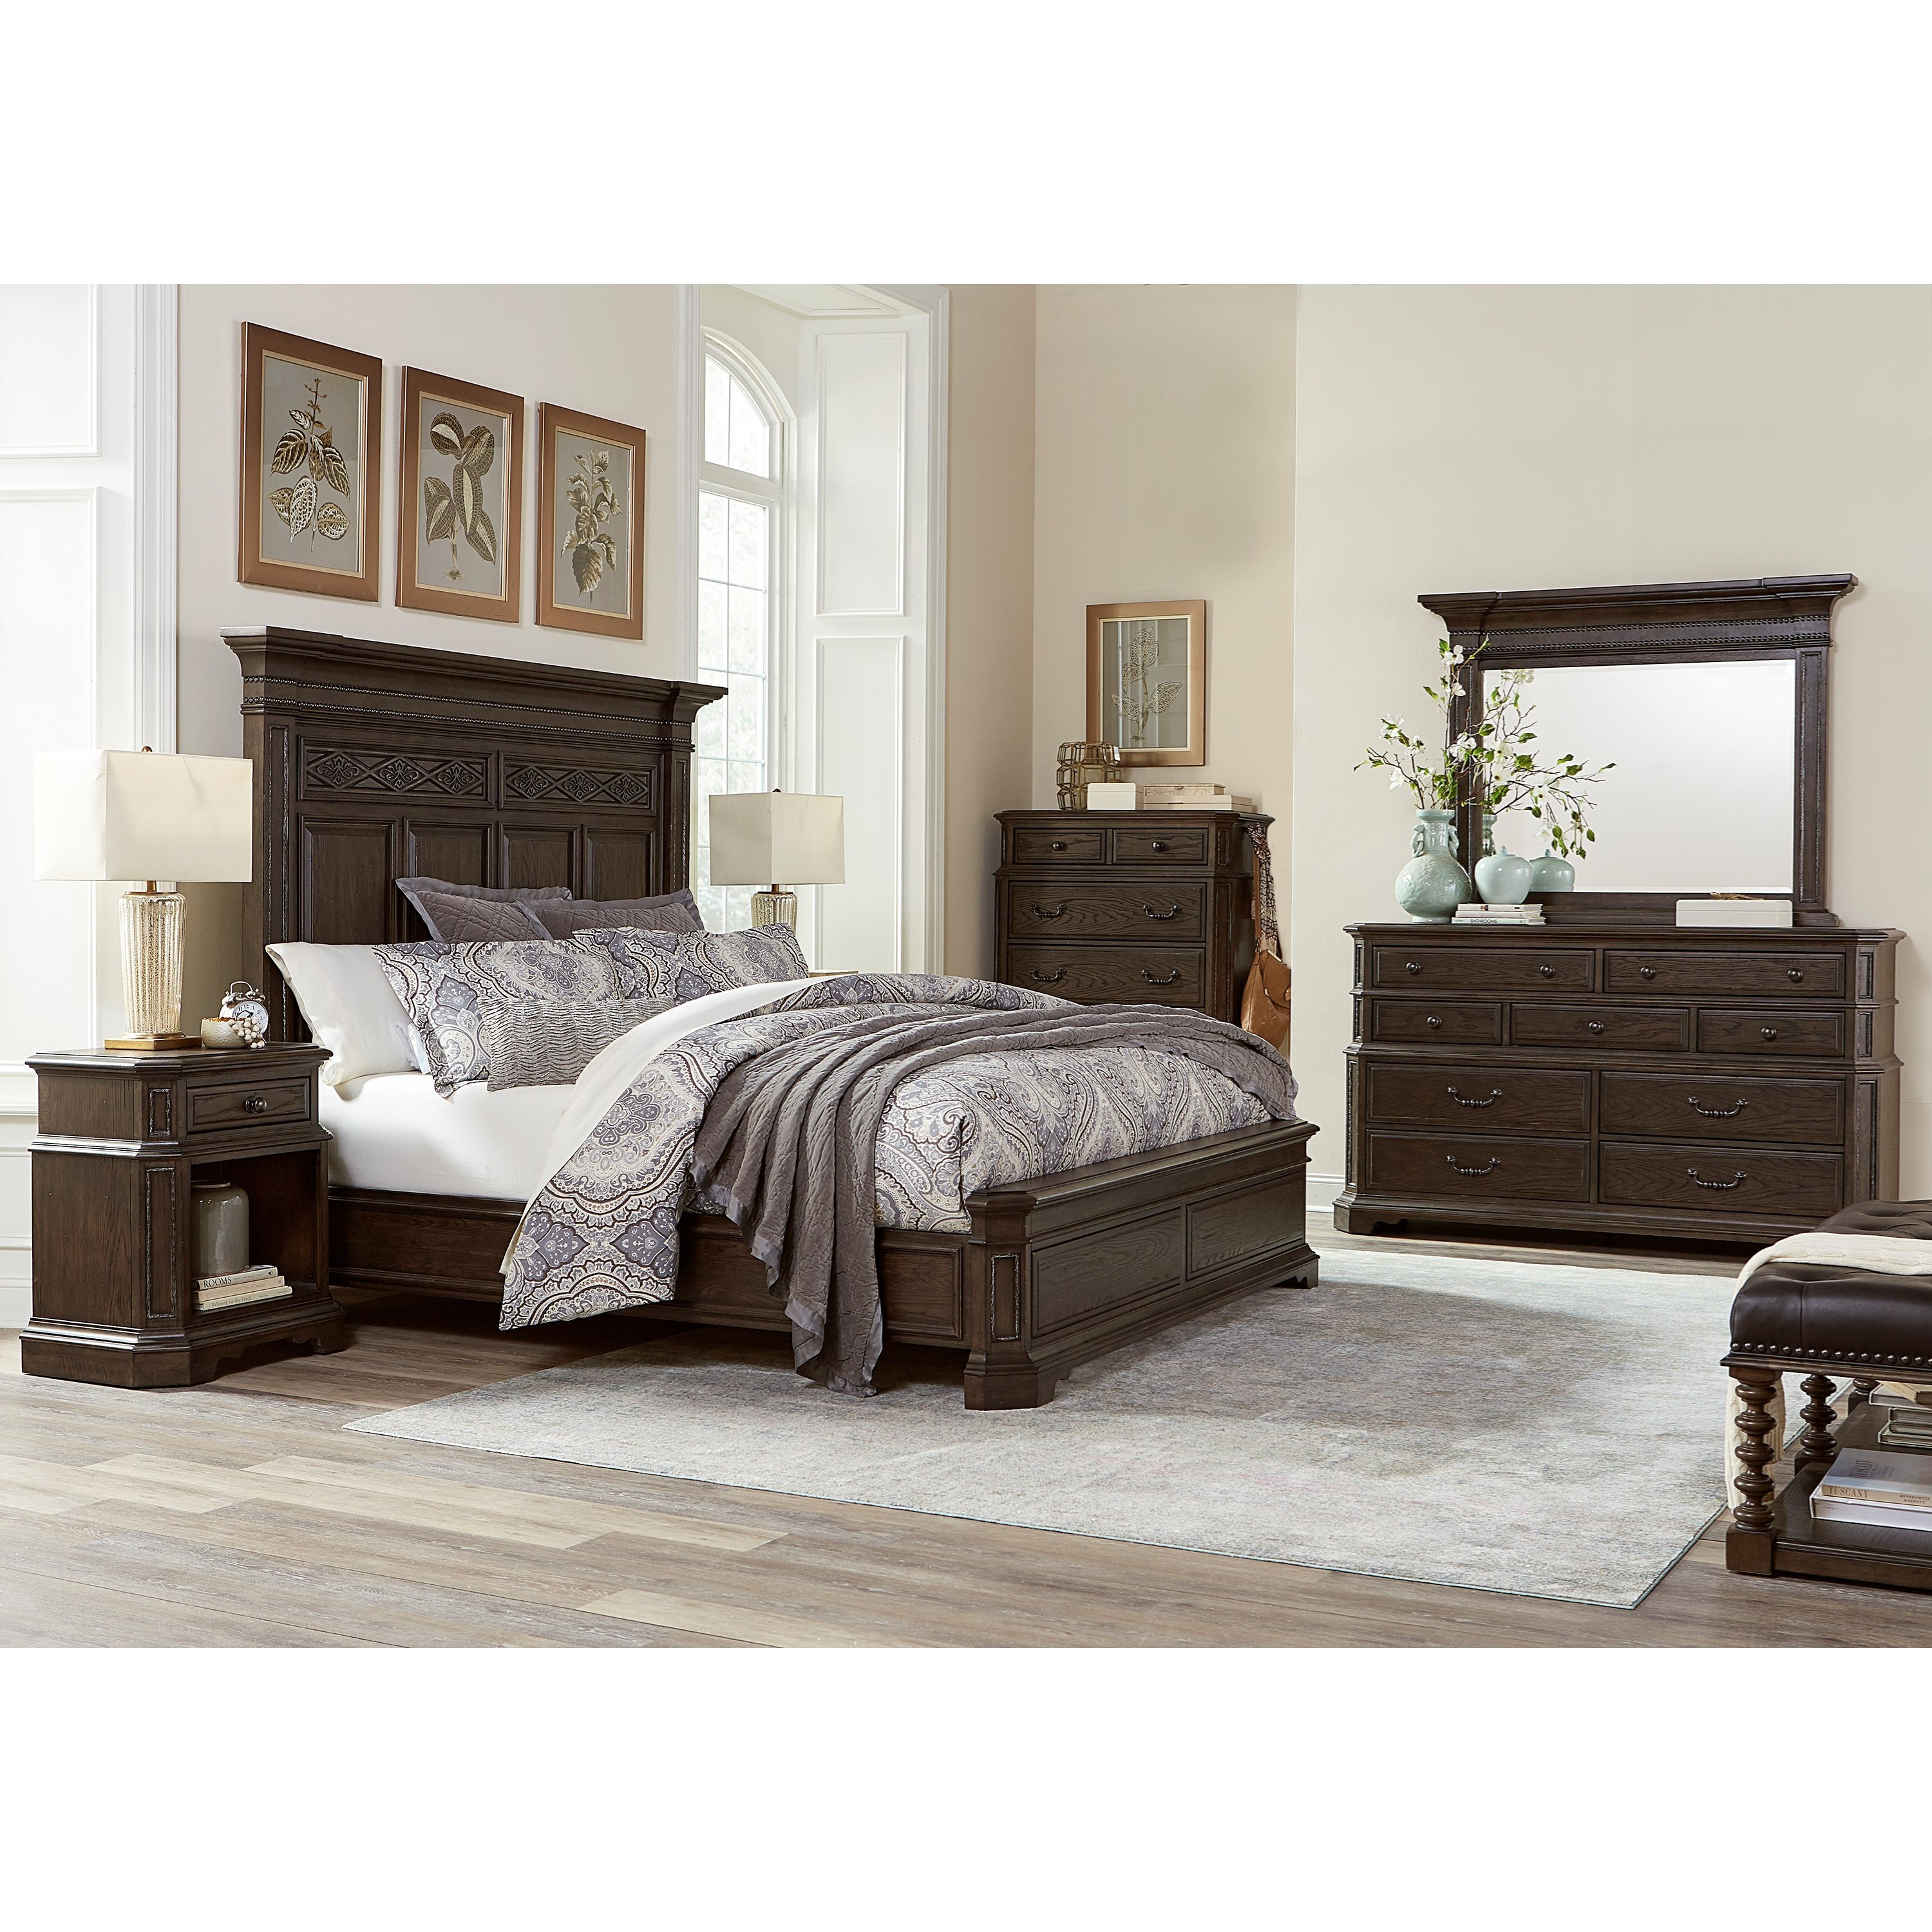 Highland Court Foxhill Traditional California King Size